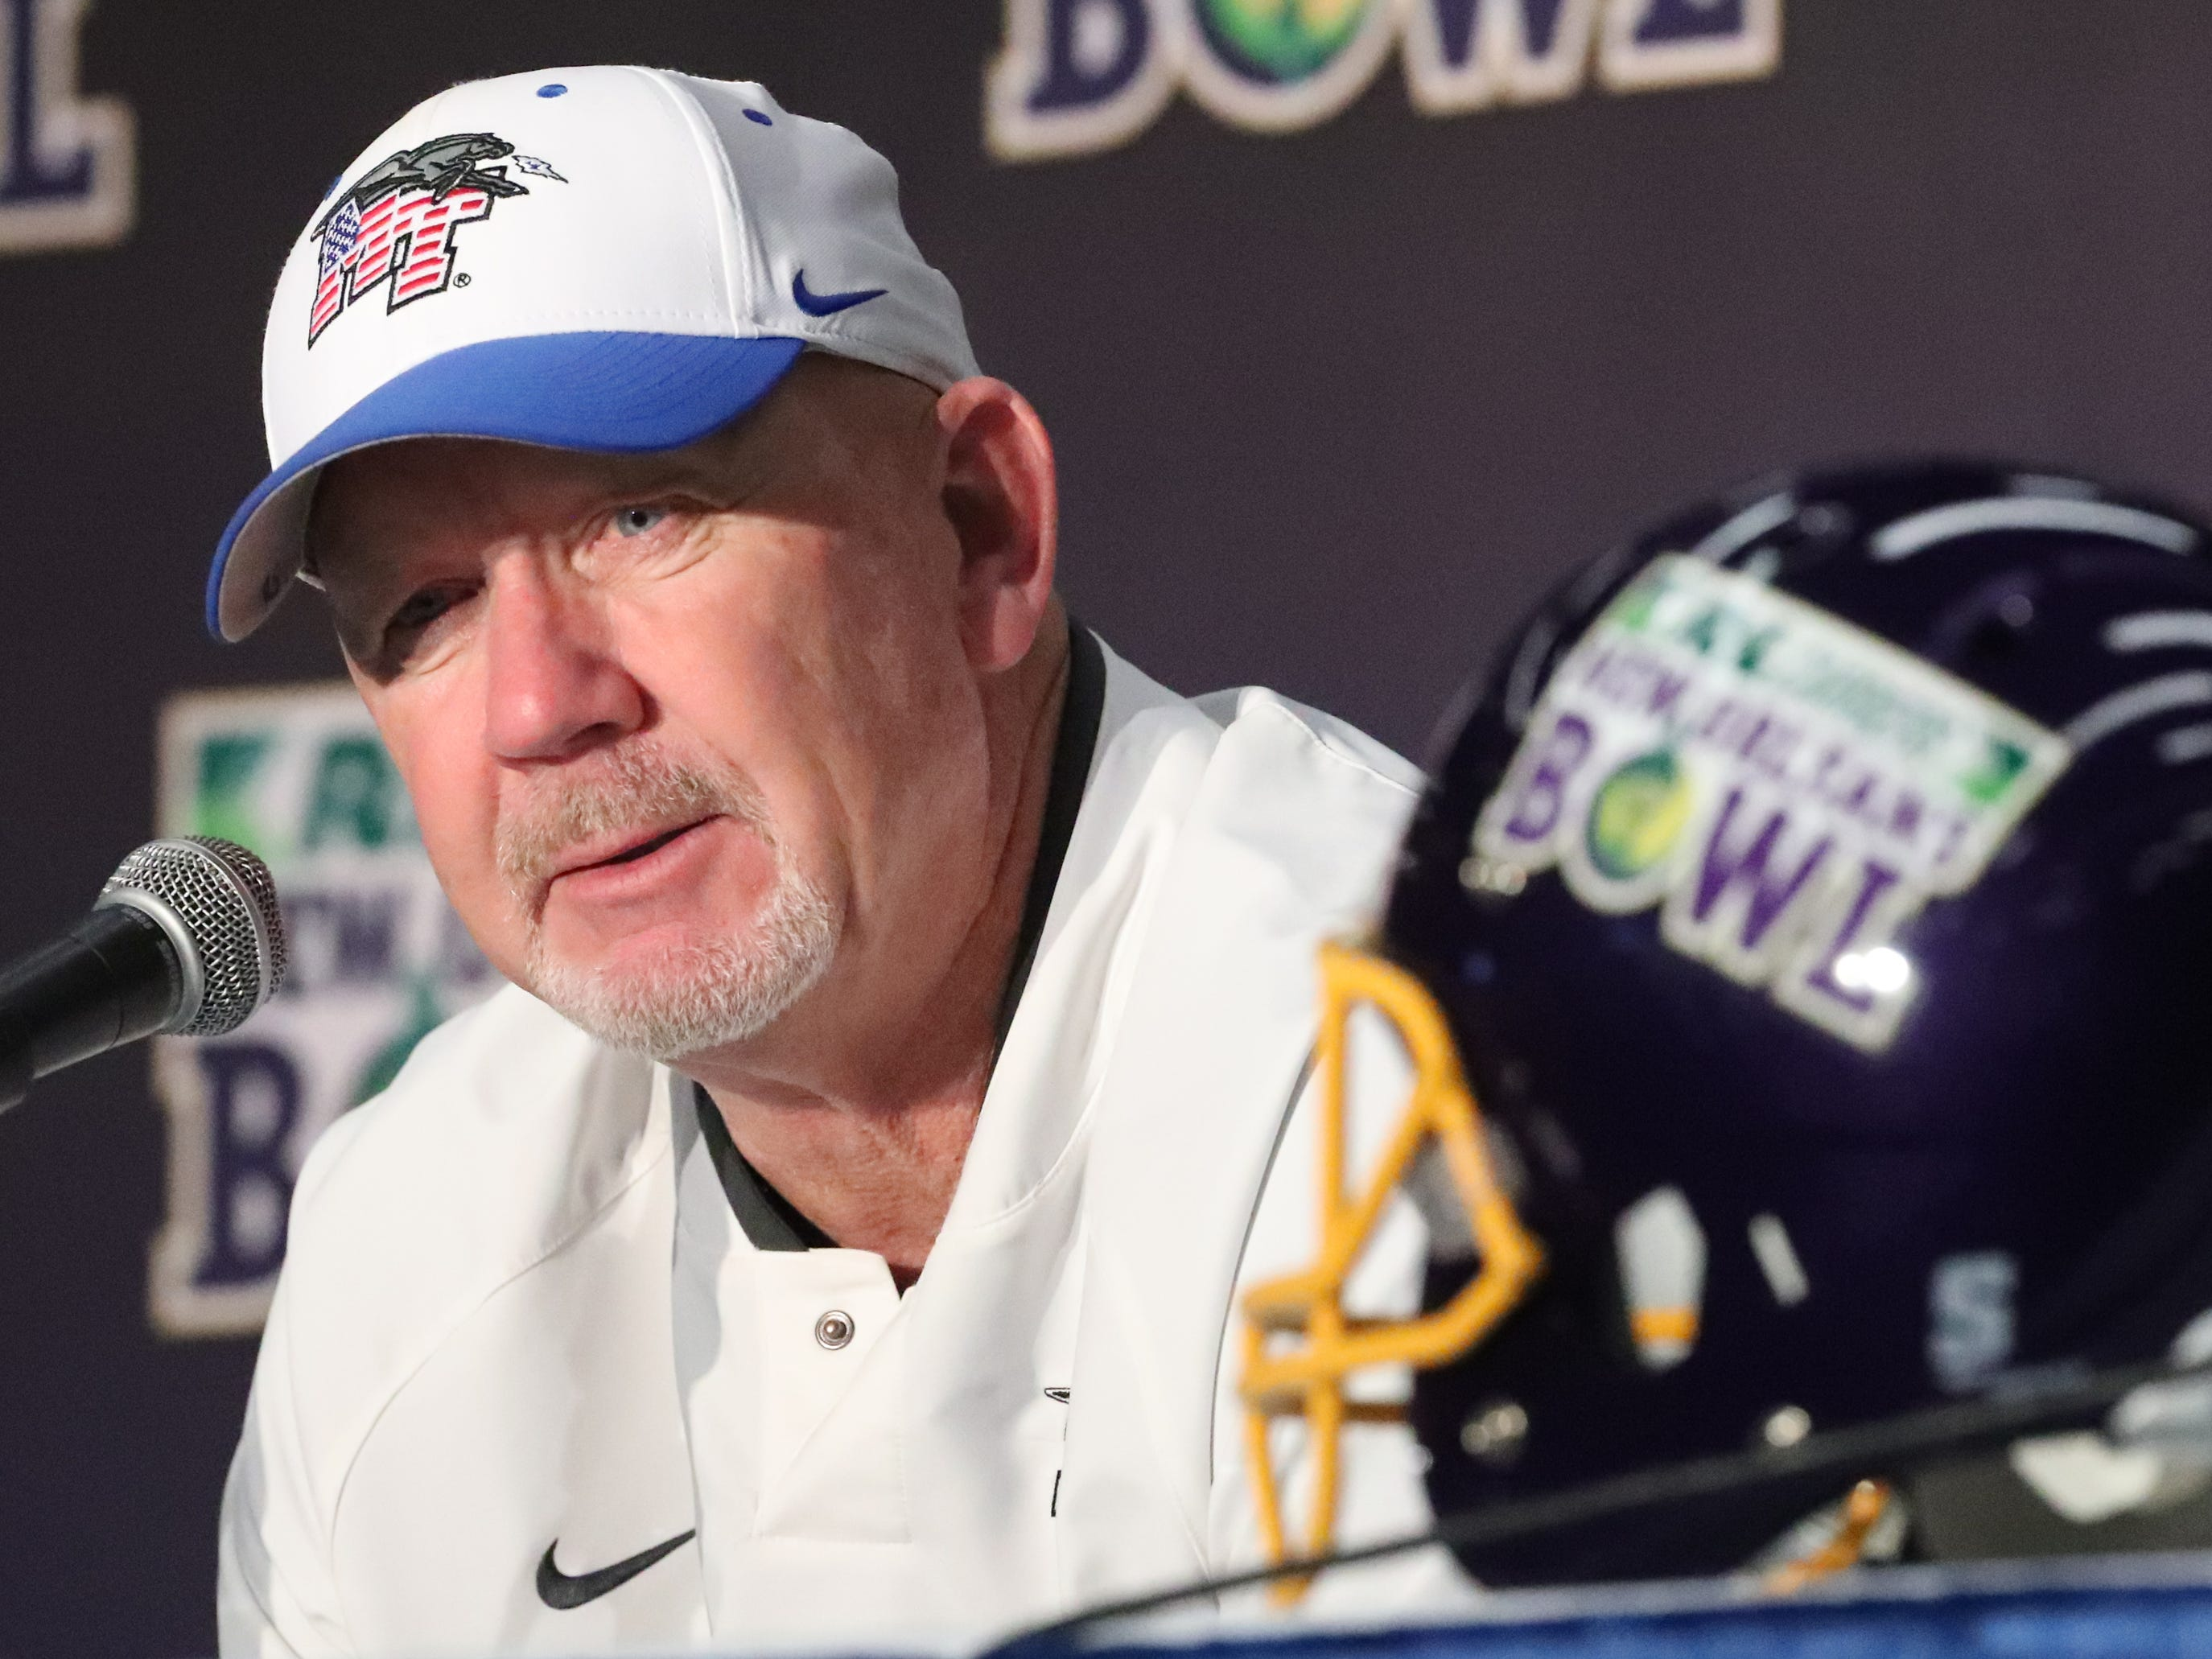 """Middle Tennessee Blue Raiders head coach Rick Stockstill talks about his son Middle Tennessee Blue Raiders quarterback Brent Stockstill (12) """"What he has done, what he has meant to this program, what he has meant to this team, words do him justice,"""" Rick said. """"He's a phenomenal human being, fantastic player, fantastic leader. I'm just very humbled to be his coach and now I get to be his dad."""" At the press conference after the lose to Appalachian State on Saturday, Dec. 15, 2018,  in the New Orleans Bowl."""